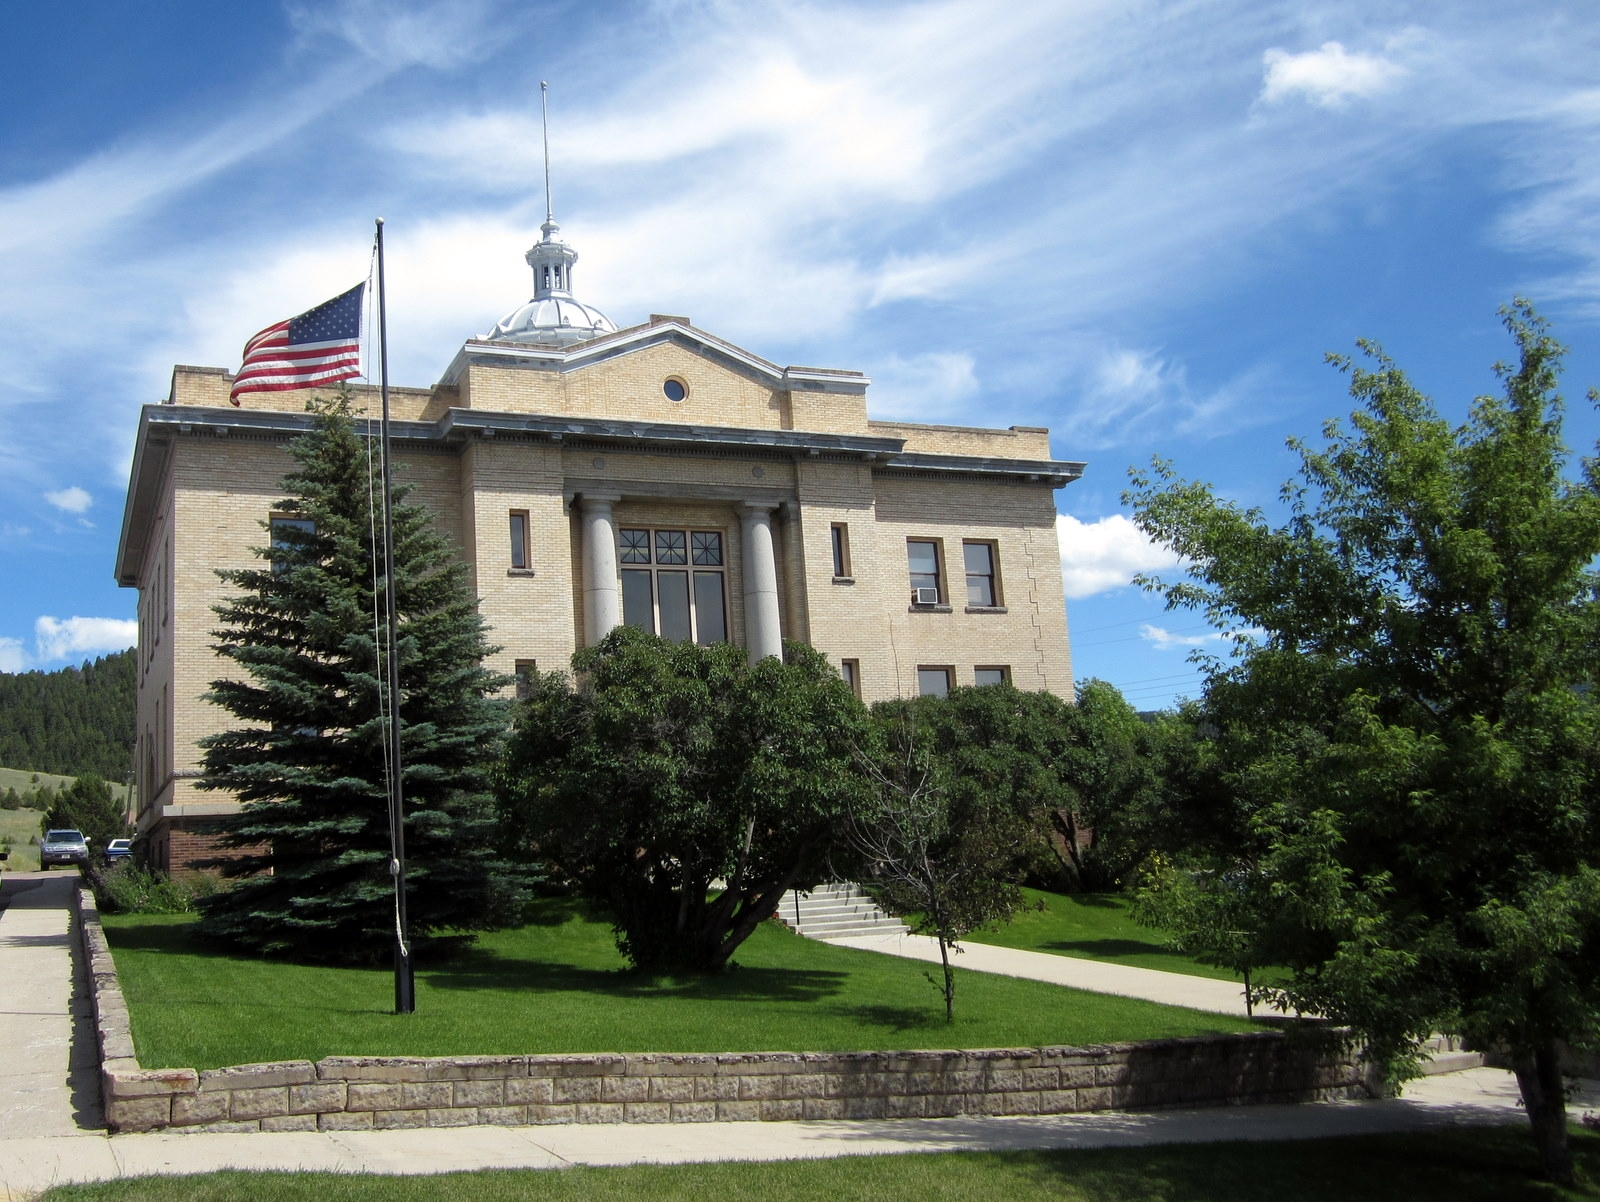 The Granite County Courthouse was built in 1913 and is a good example of Neoclassical architecture.